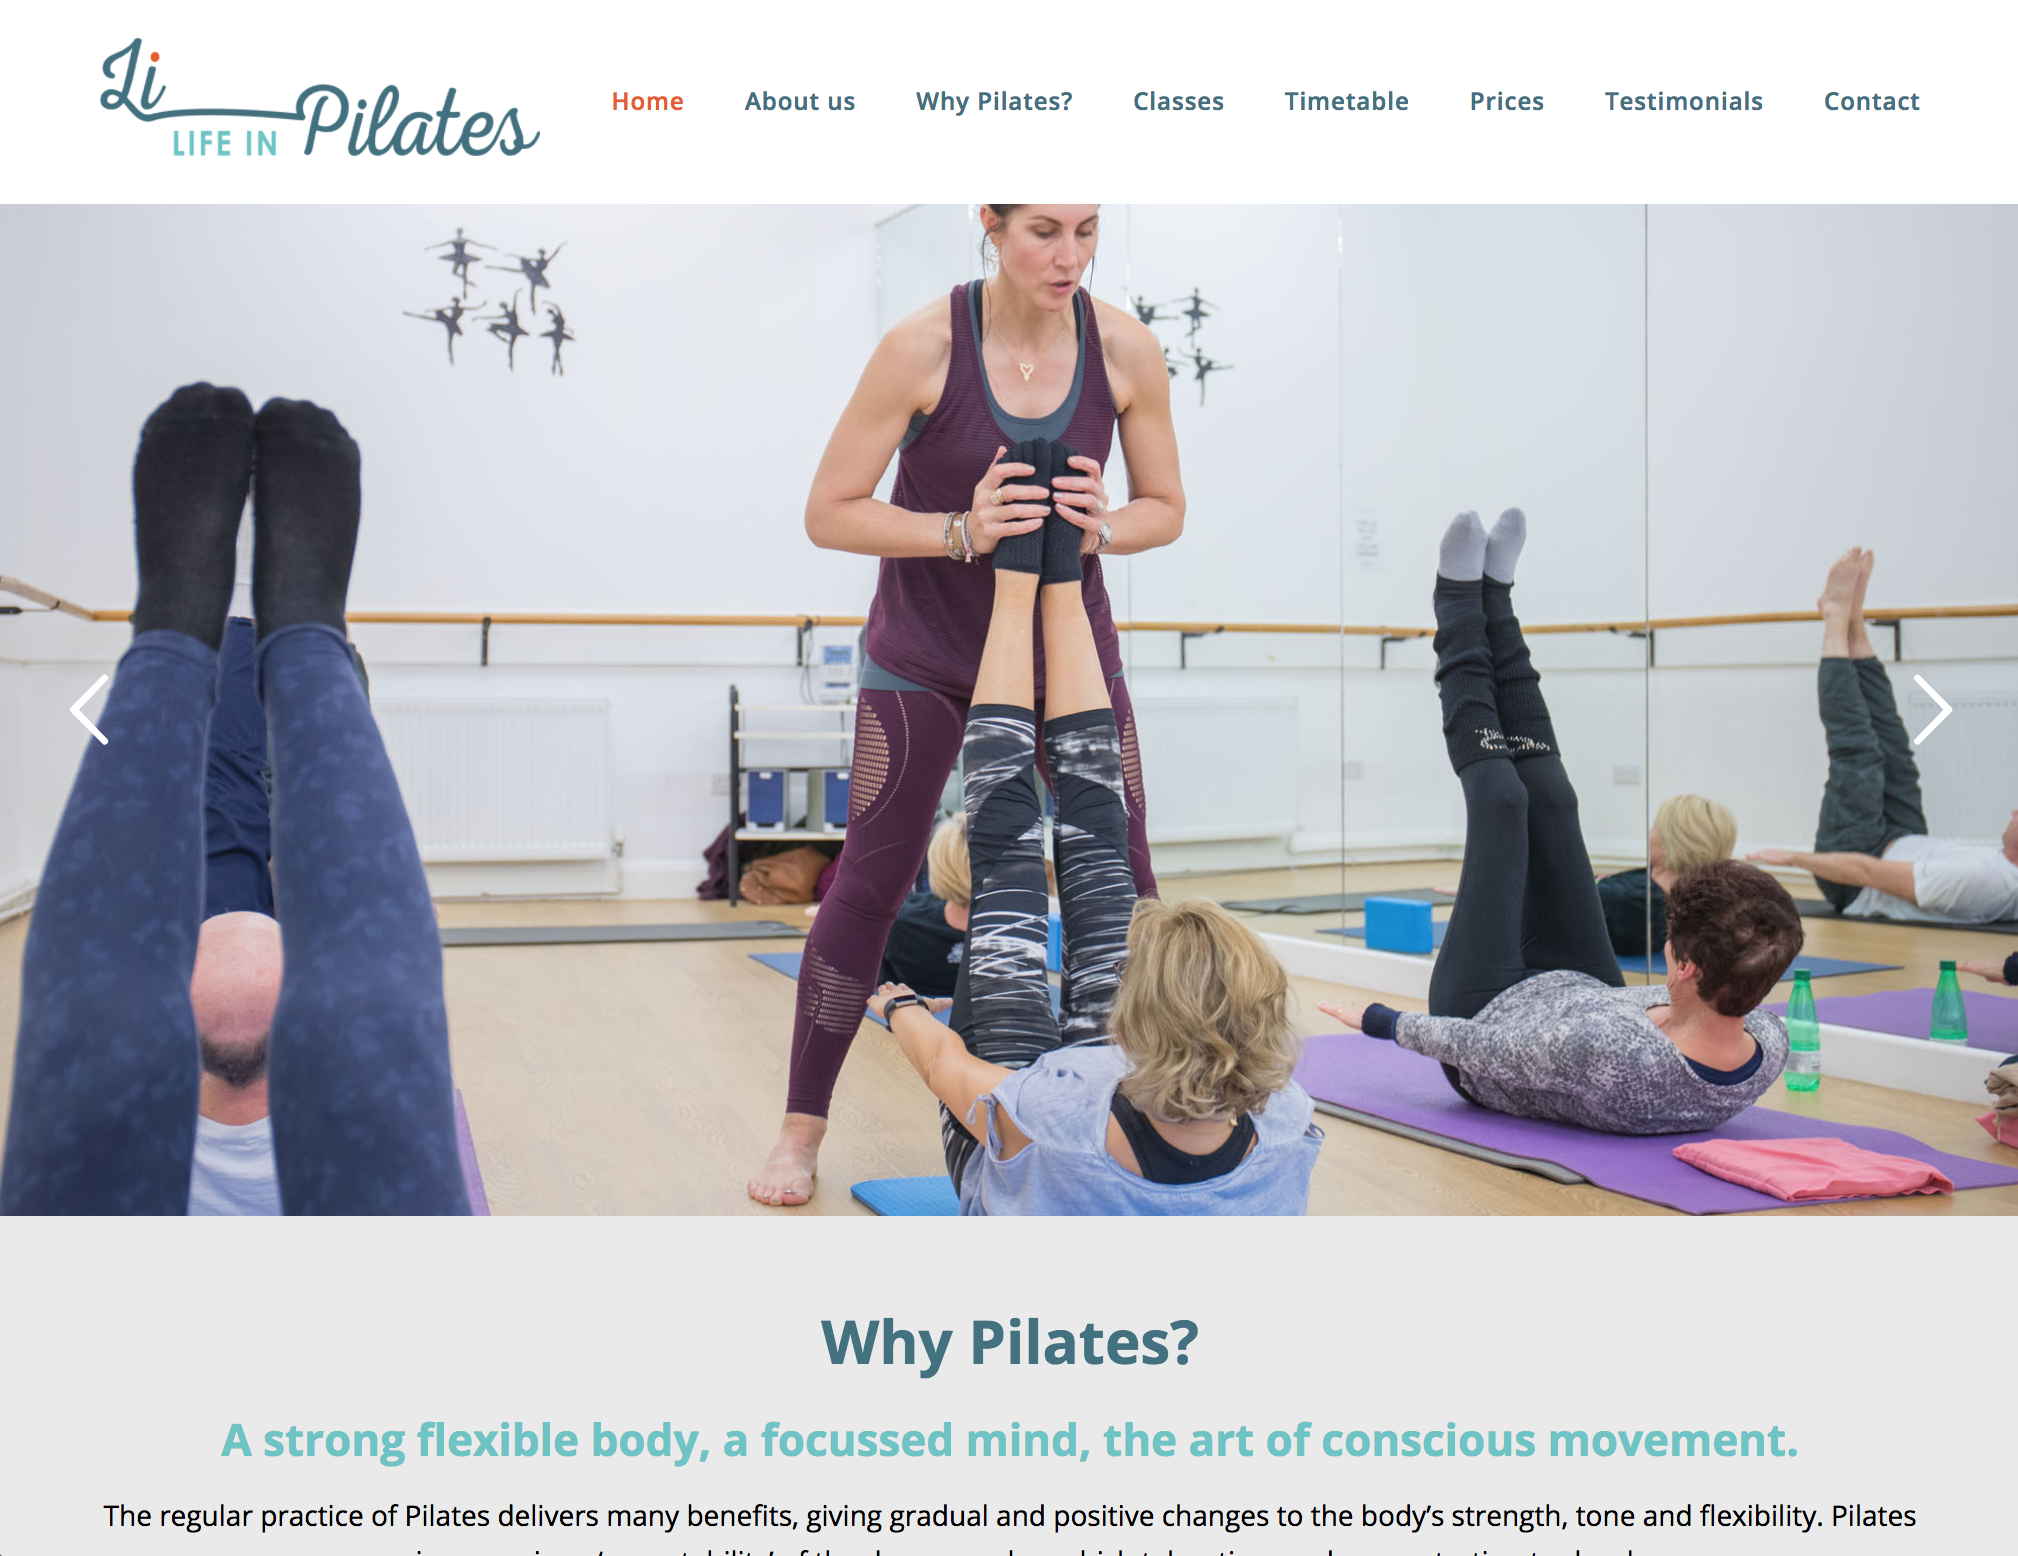 Life in Pilates - pilates websites in bromley and croydon